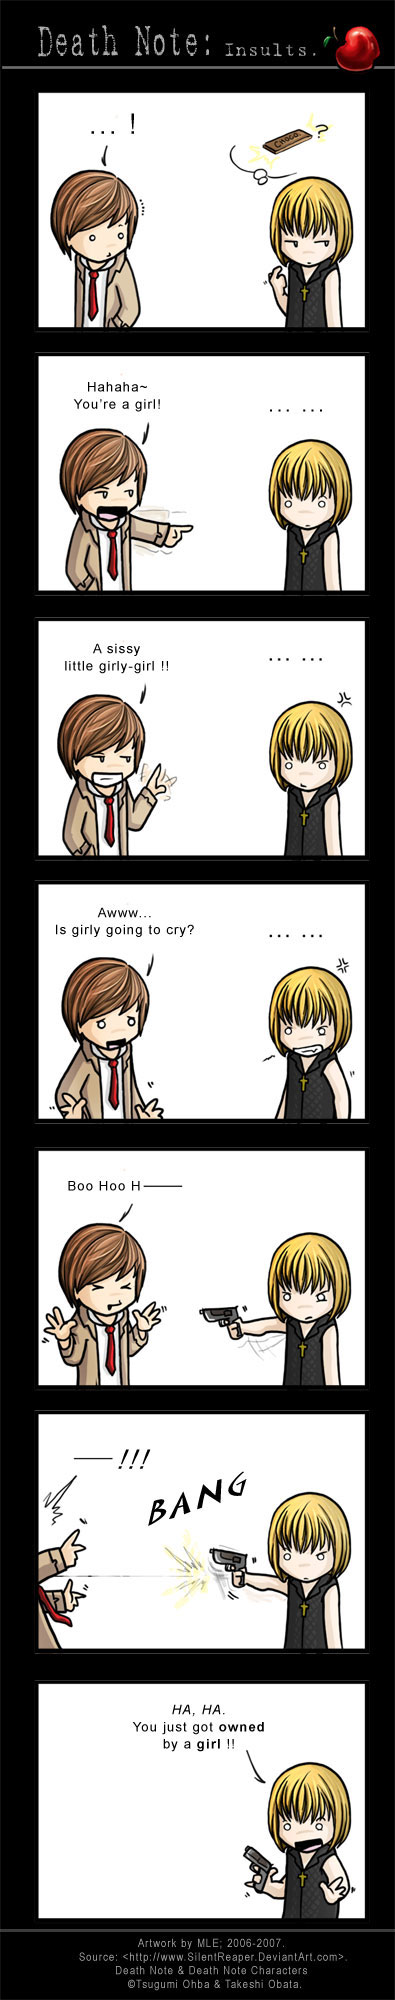 Death Note: Insults by eychanchan